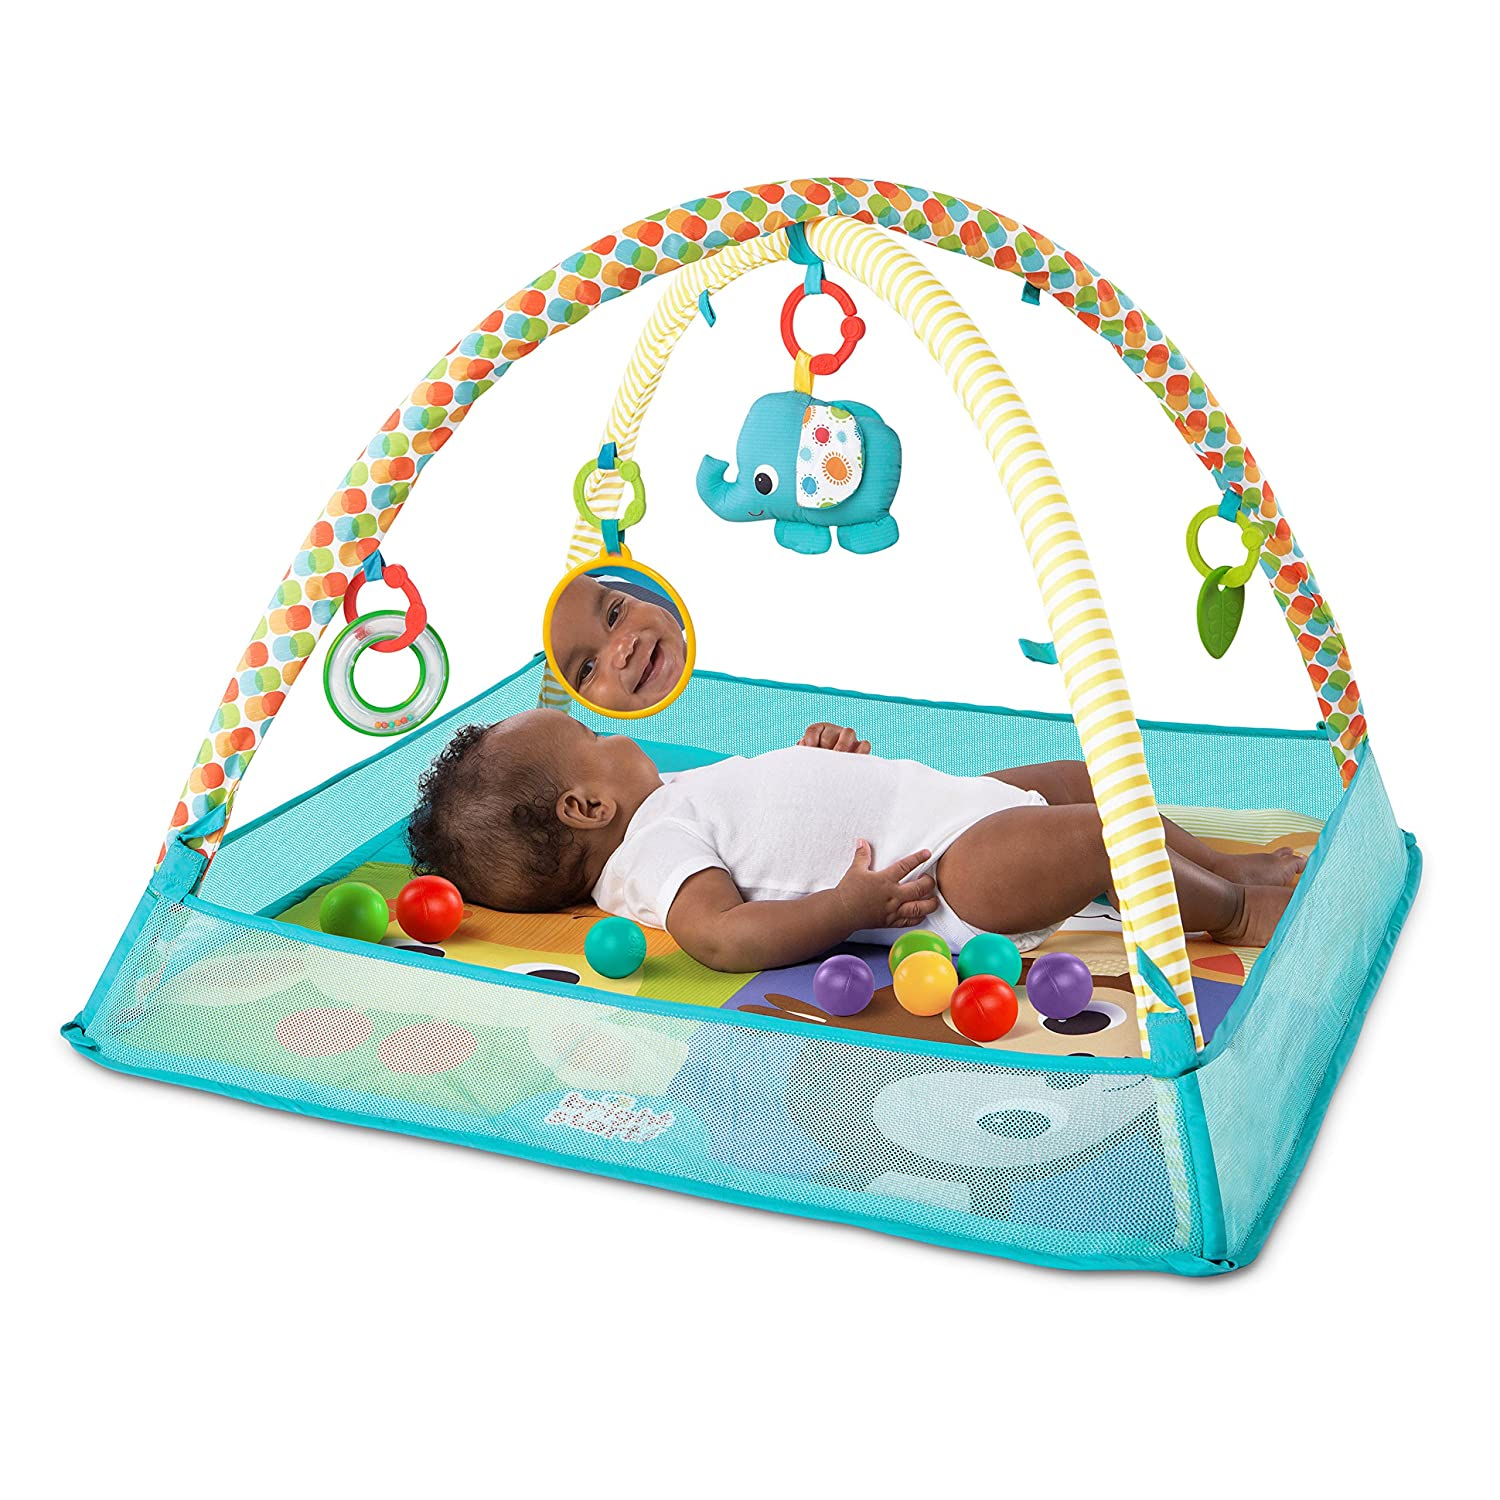 Bright Starts Mesh Ball Pit Activity GYM Spieldecke